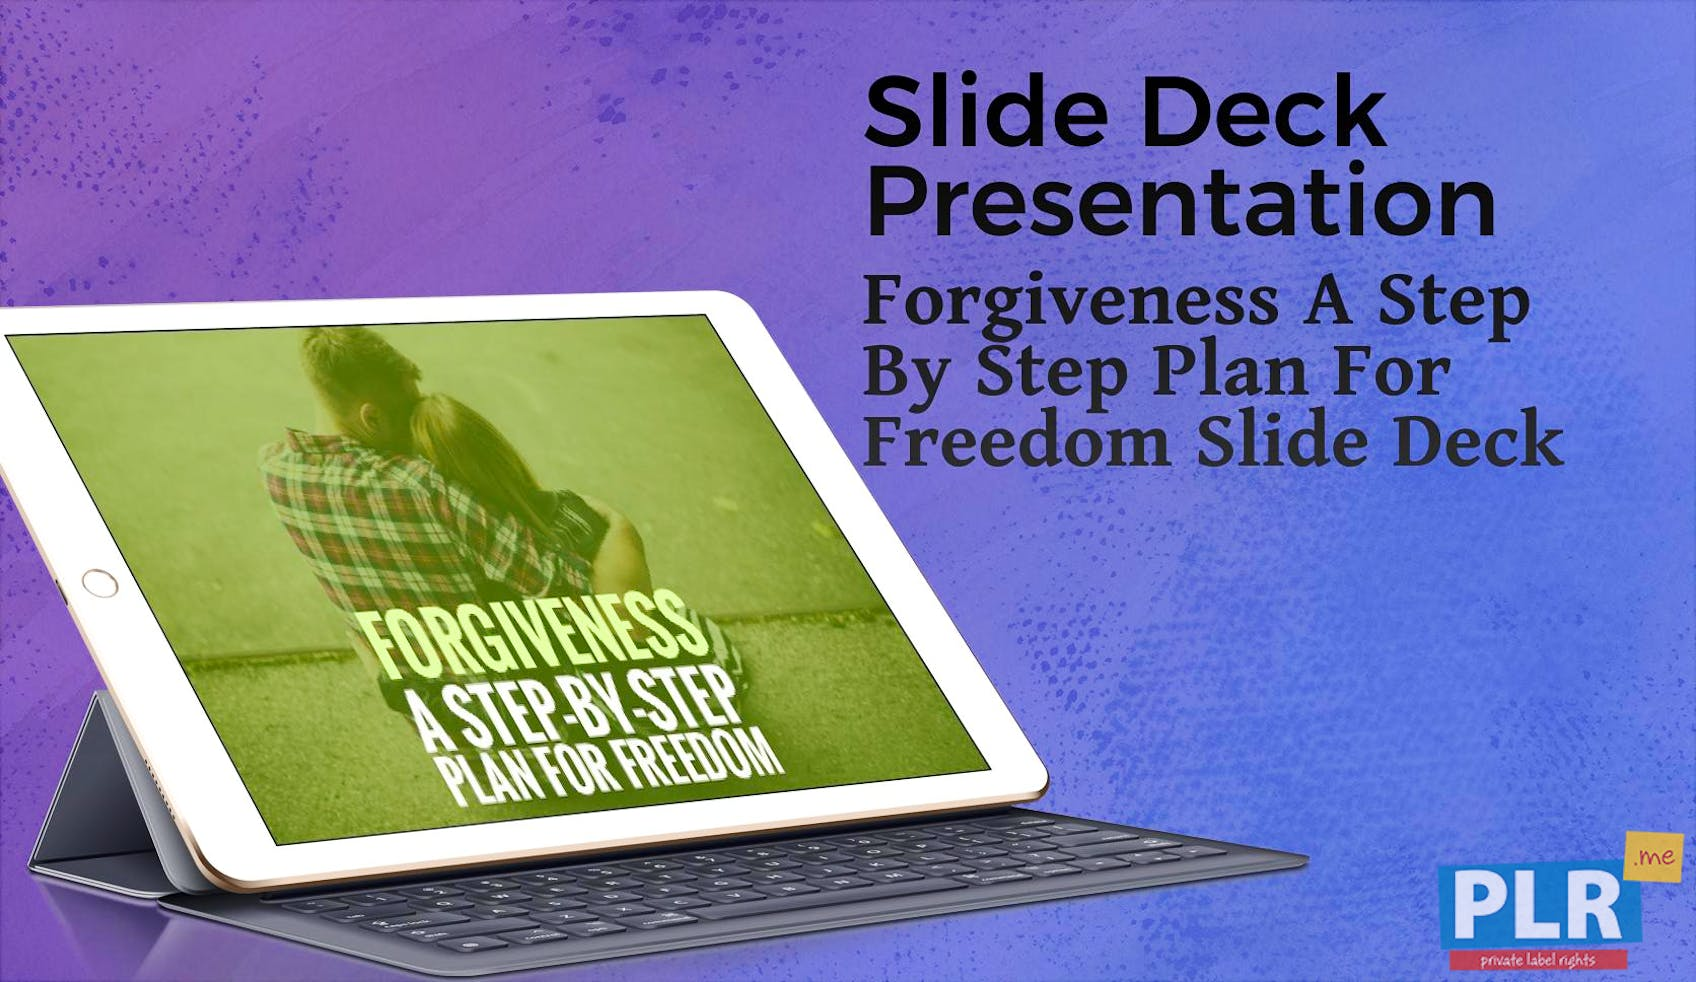 Forgiveness A Step By Step Plan For Freedom Slide Deck